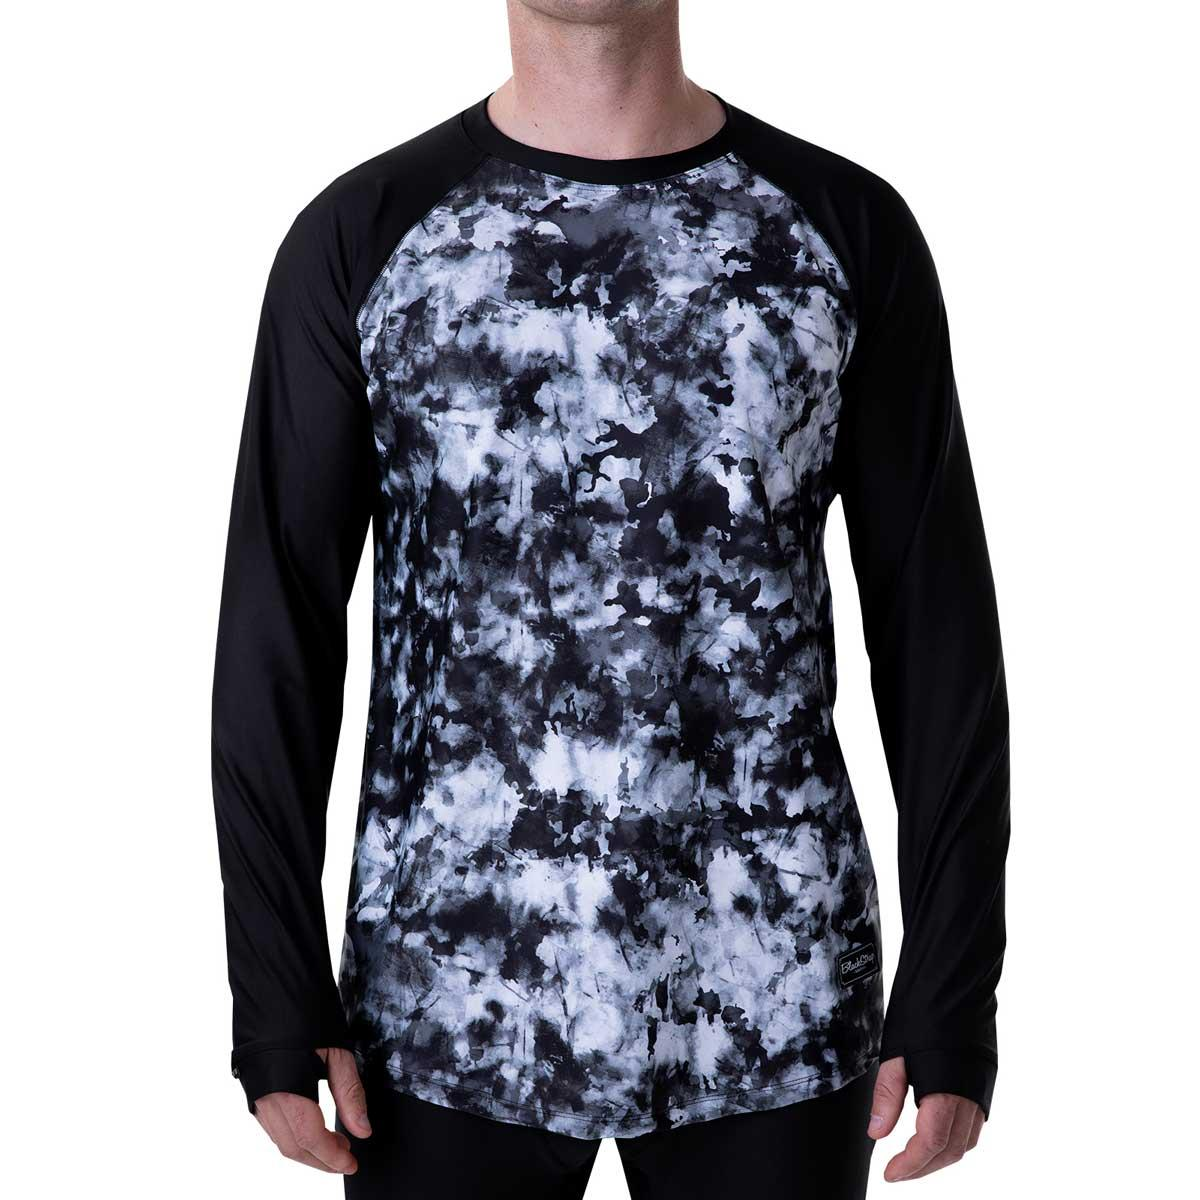 BlackStrap Skyliner in Tye Dye Blac